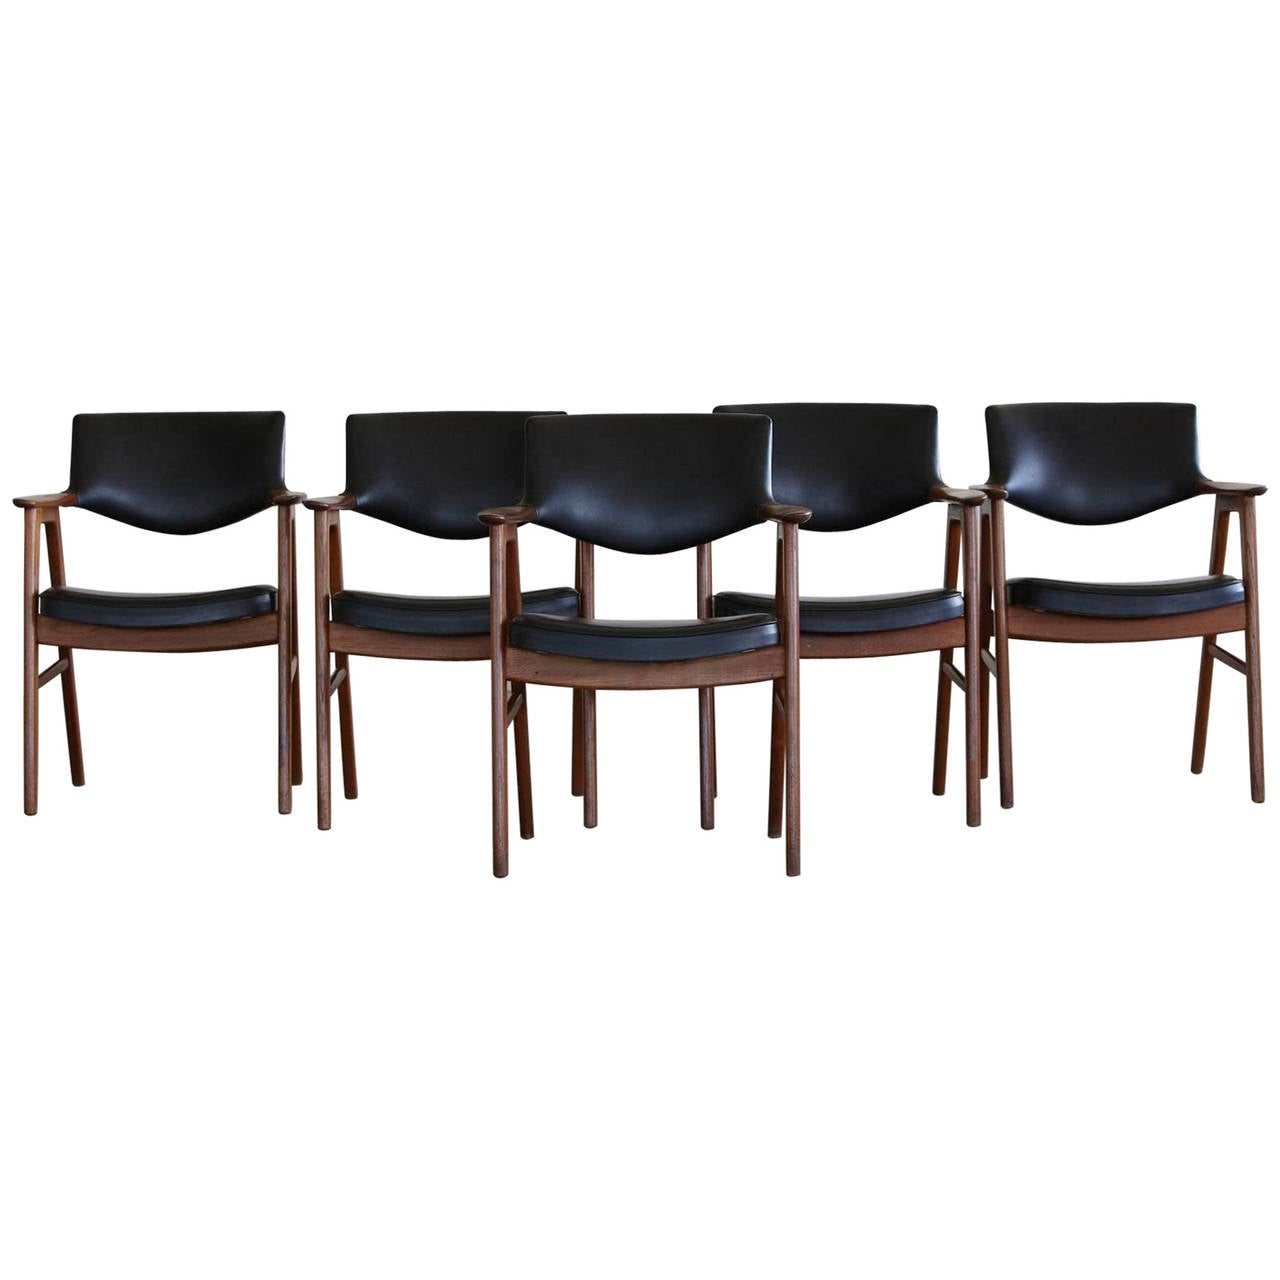 Set of Five Dining Chairs in Teak and Black Vinyl by Erik  : 2966352l from www.1stdibs.com size 1280 x 1280 jpeg 62kB